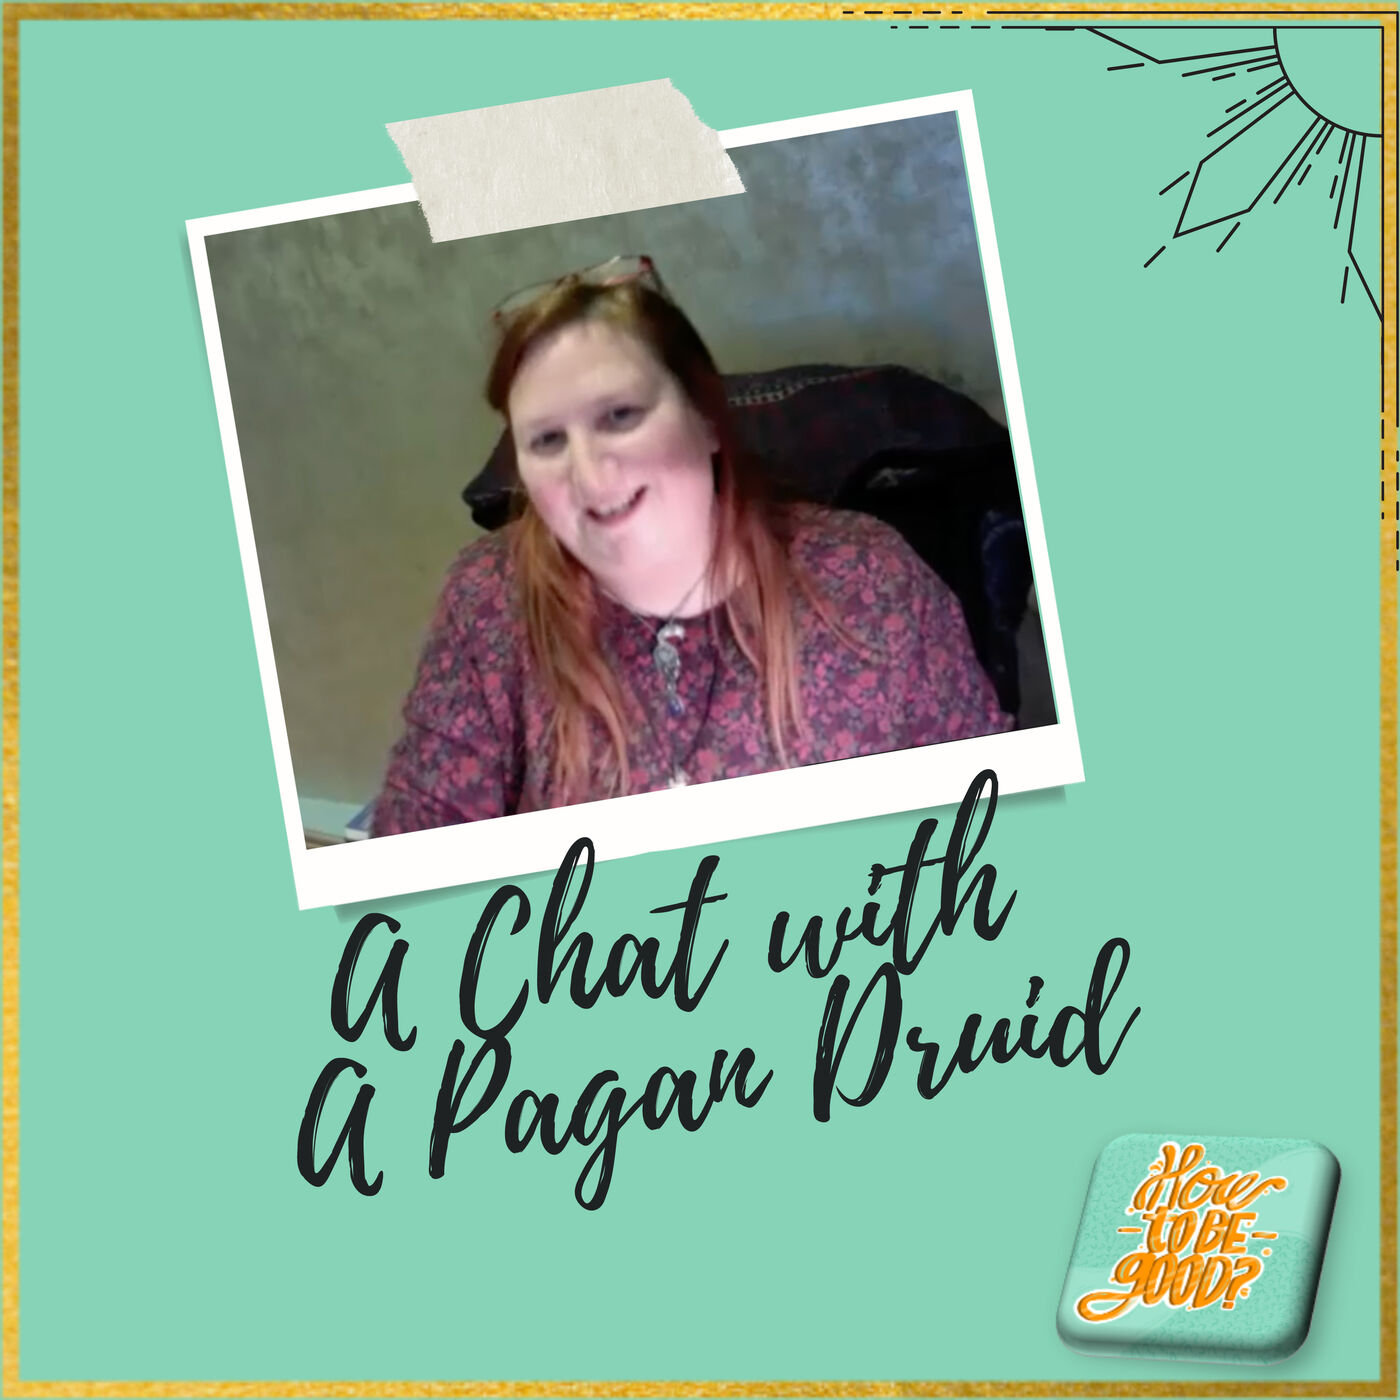 A Chat with a Pagan Druid